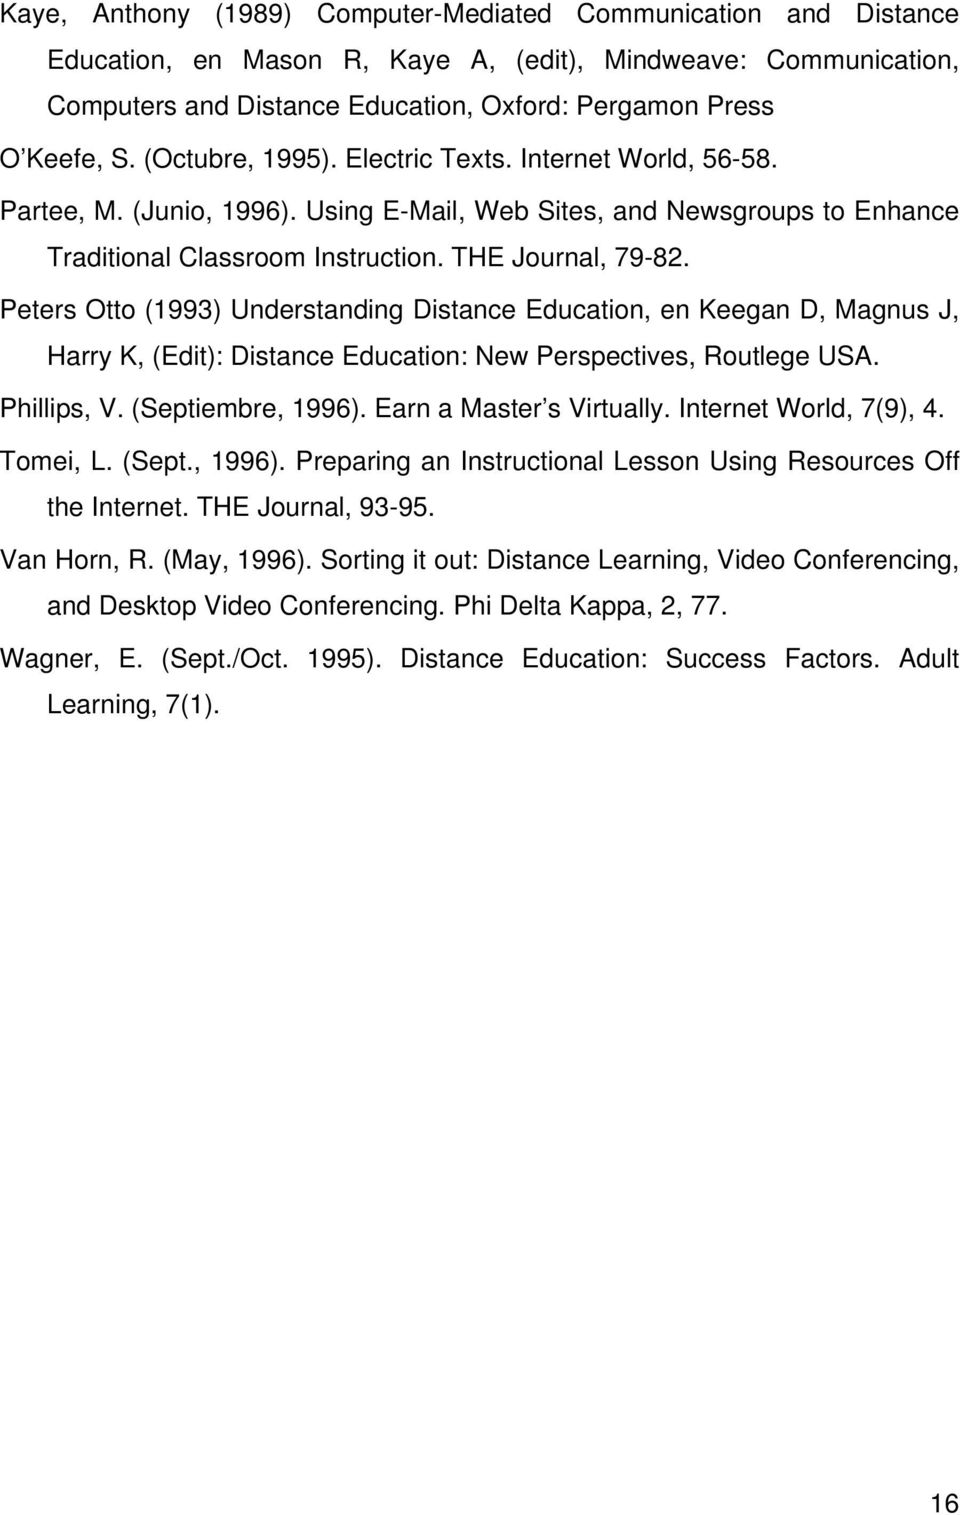 Peters Otto (1993) Understanding Distance Education, en Keegan D, Magnus J, Harry K, (Edit): Distance Education: New Perspectives, Routlege USA. Phillips, V. (Septiembre, 1996).